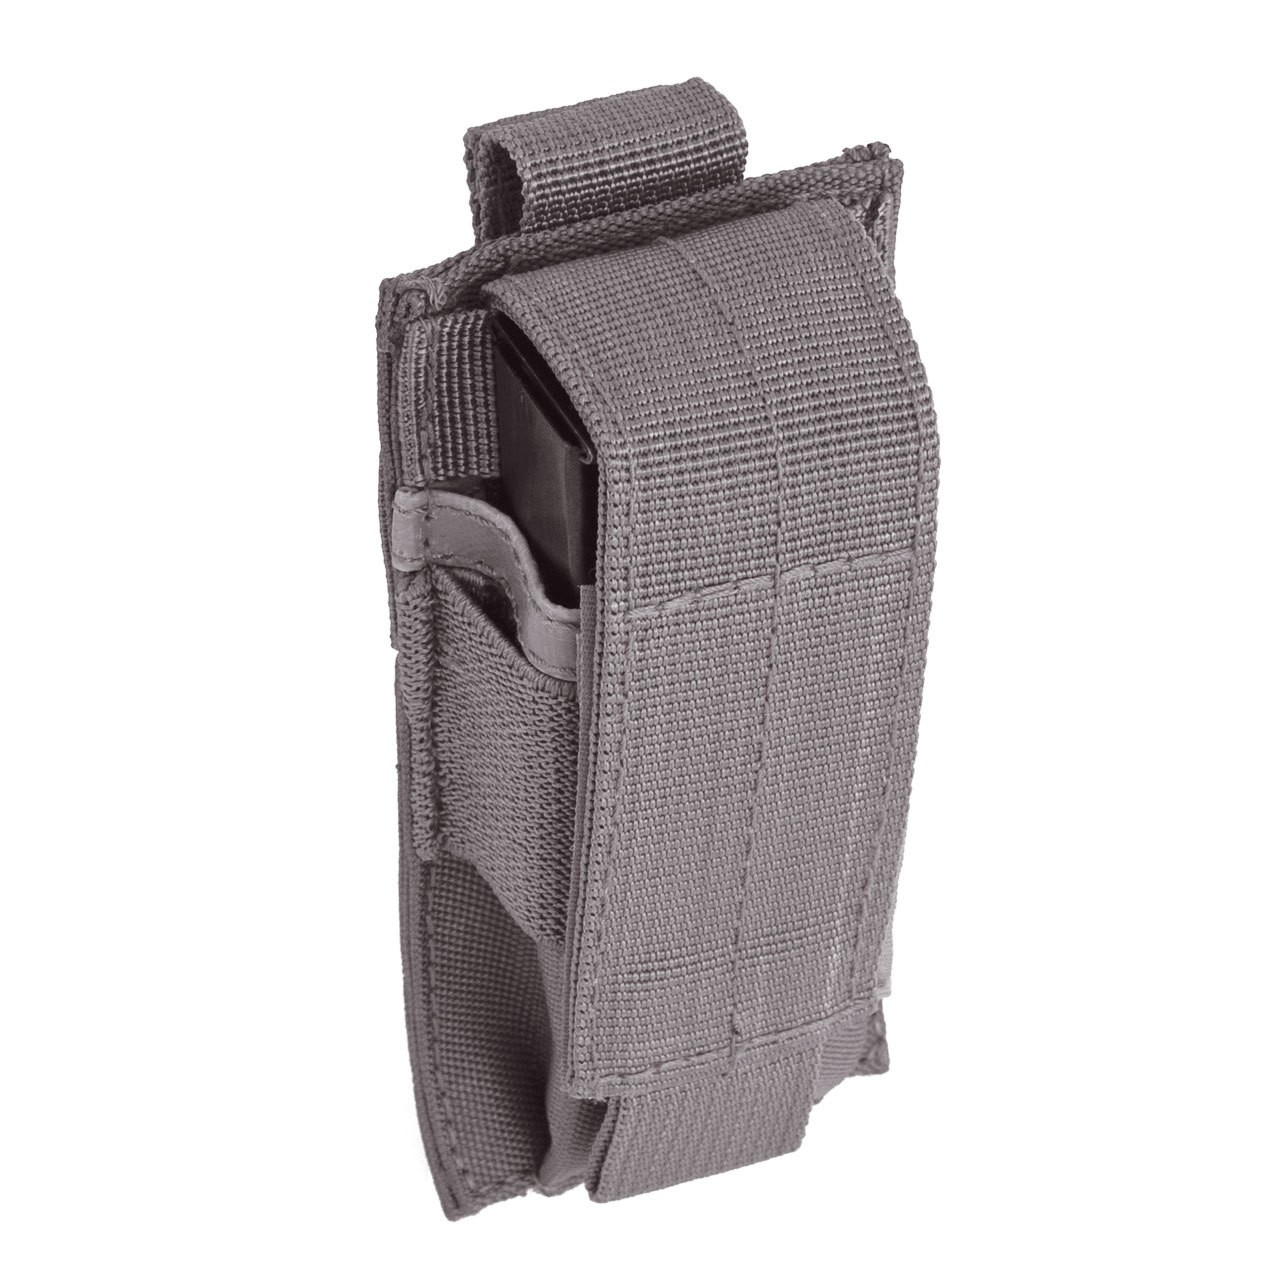 Red Rock Gear MOLLE Single Pistol Mag Pouch